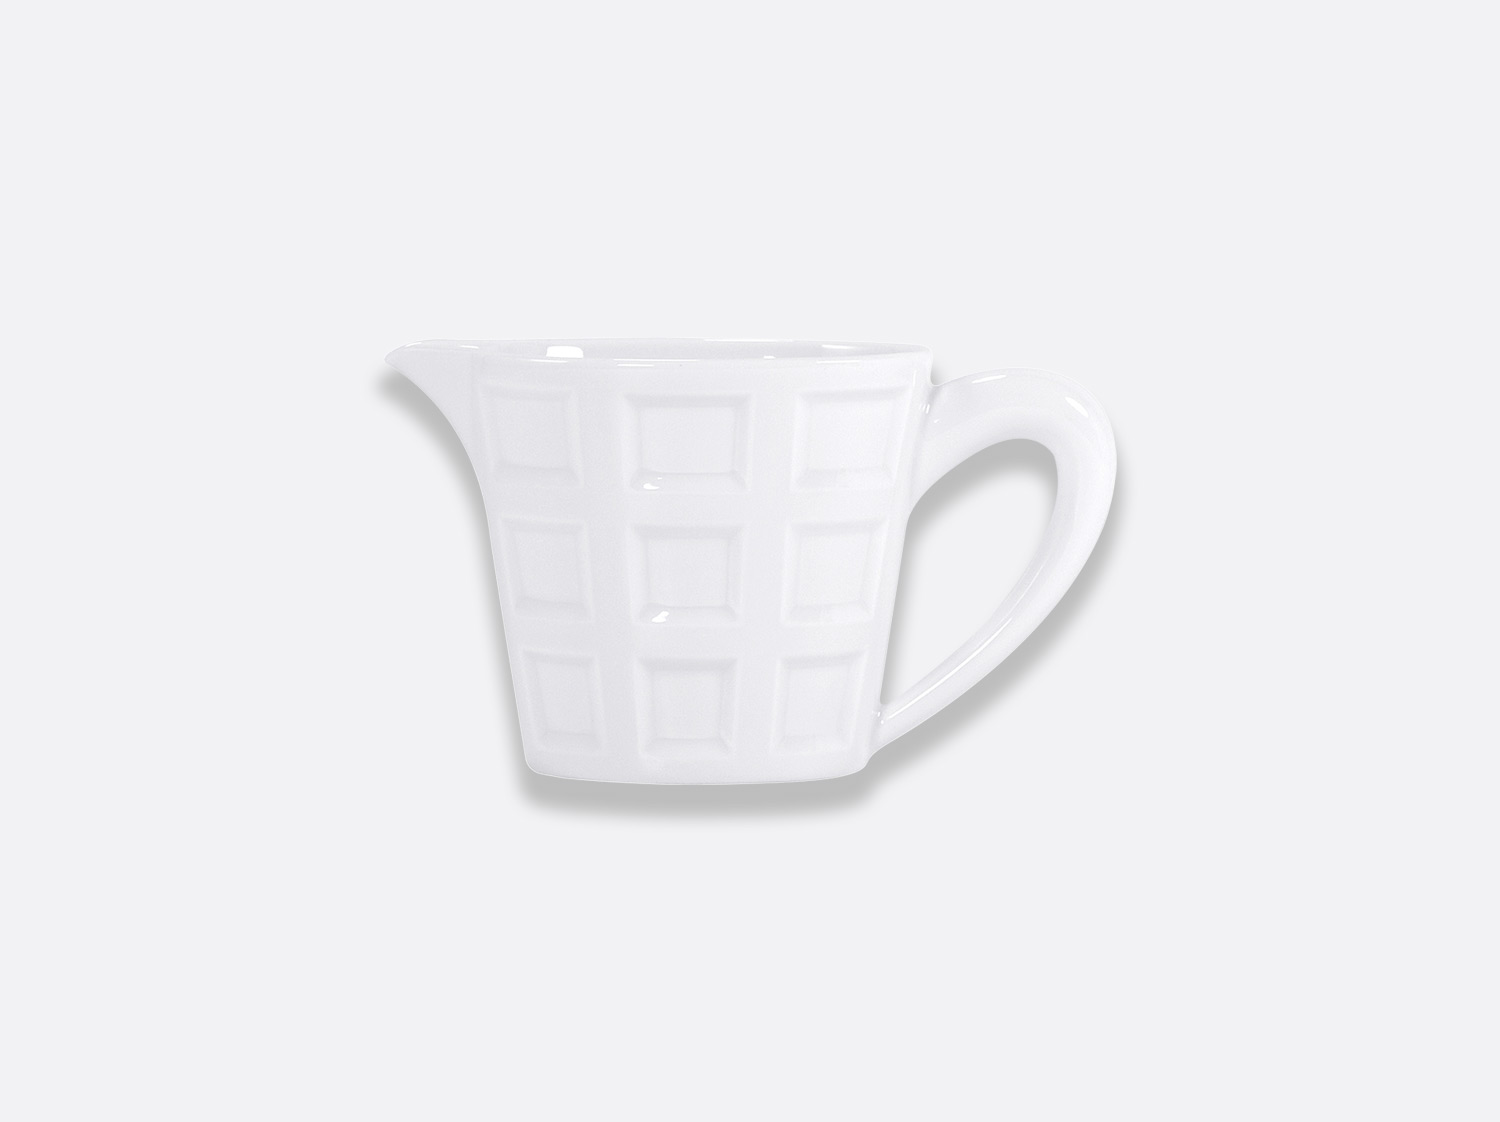 Crémier 12 tasses 30 cl en porcelaine de la collection Naxos Bernardaud